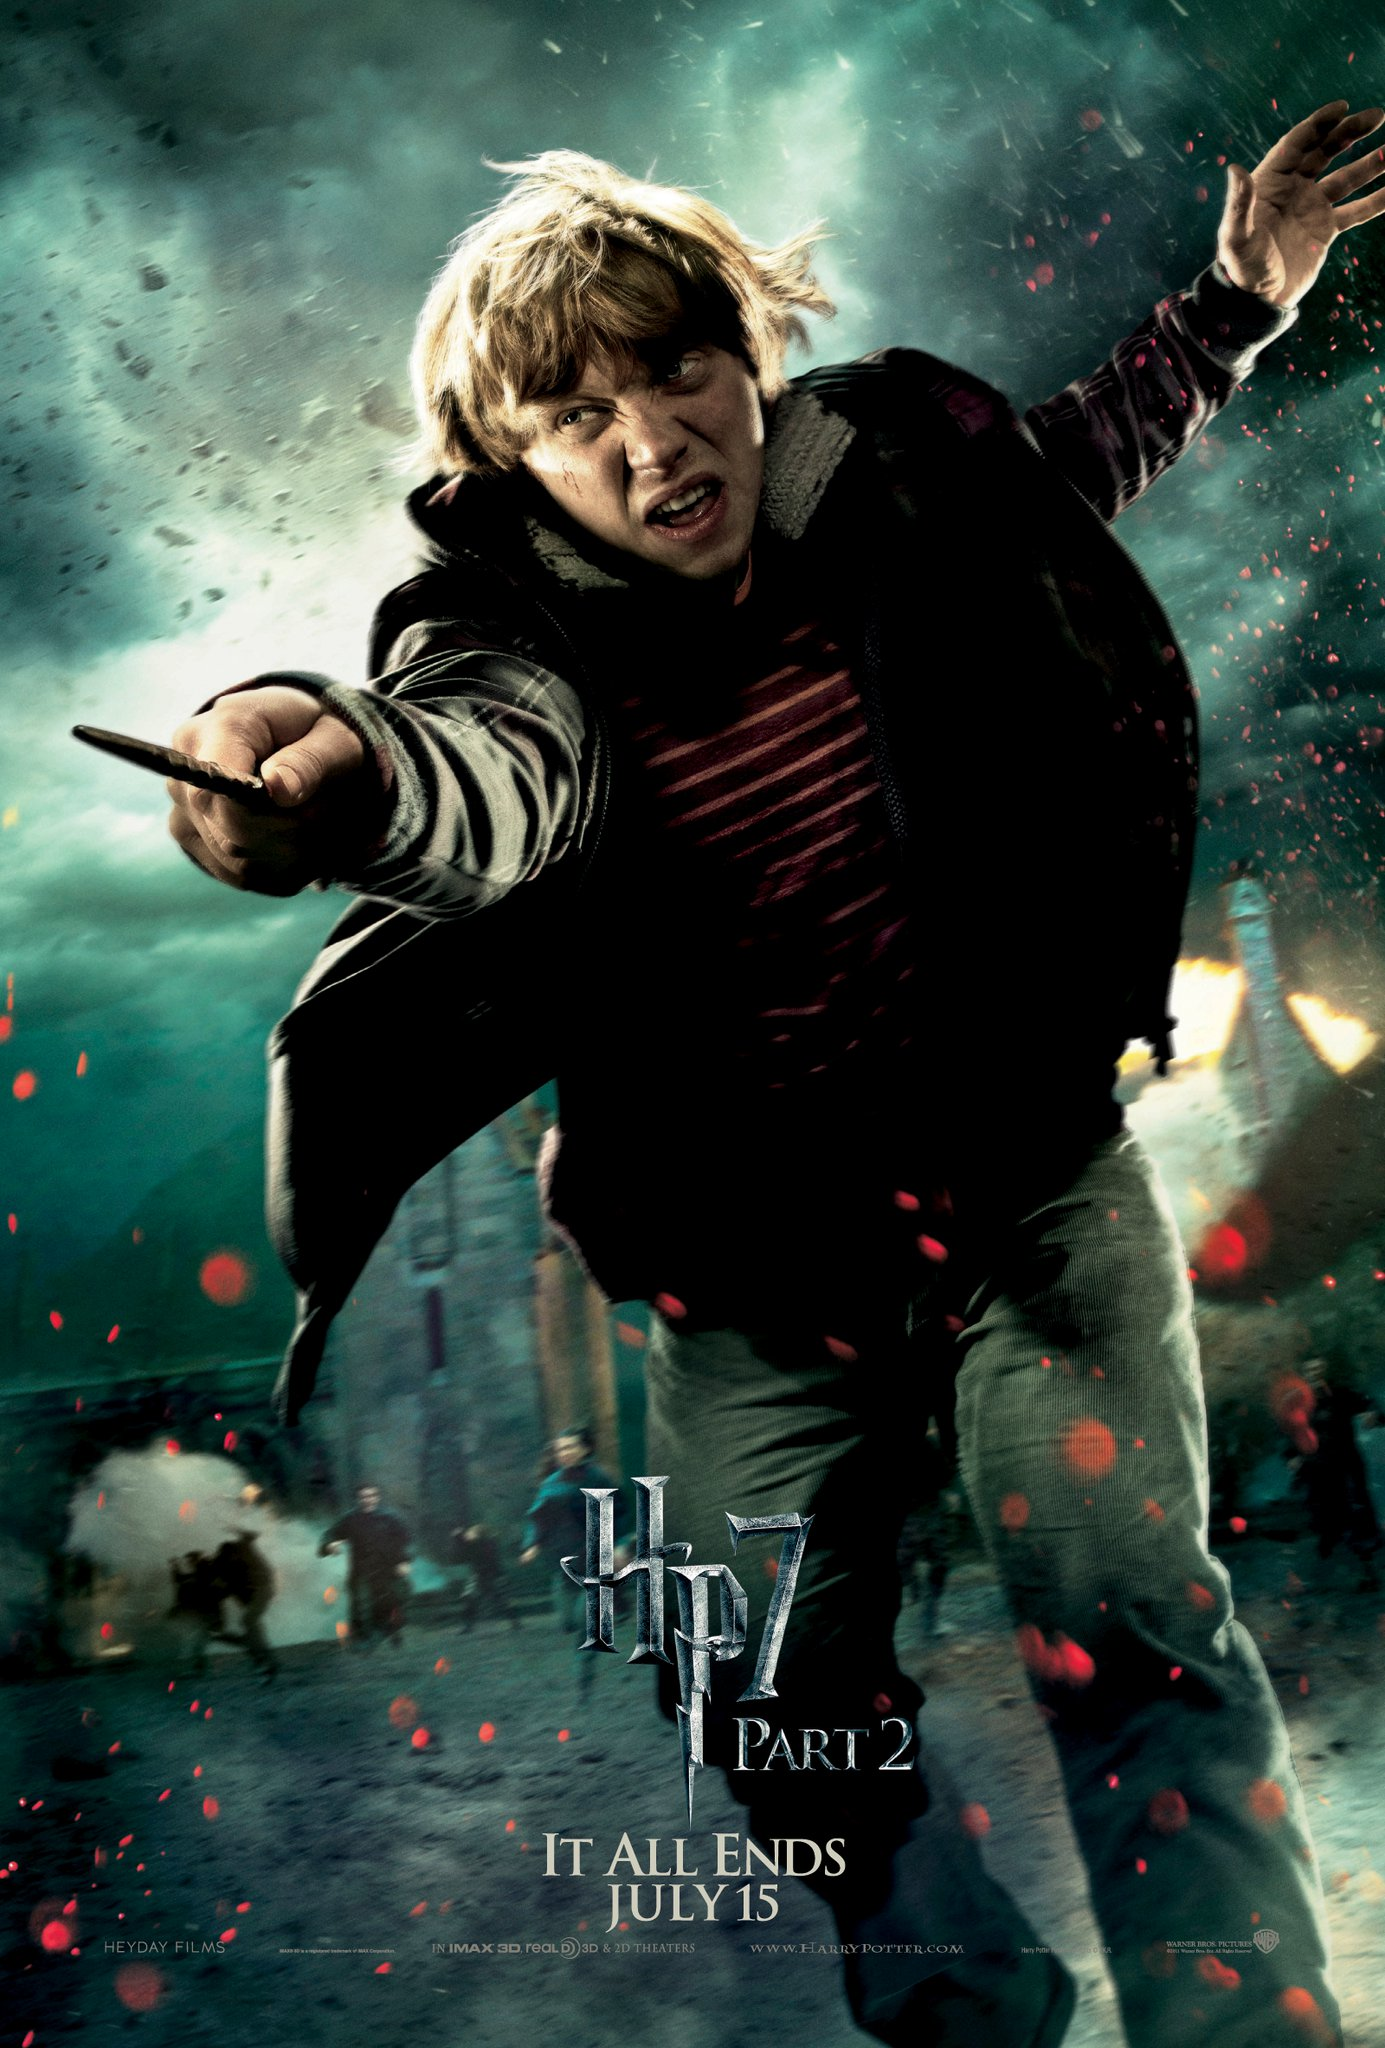 Wallpaper HP7 Part 2 poster - Ron Harry Potter